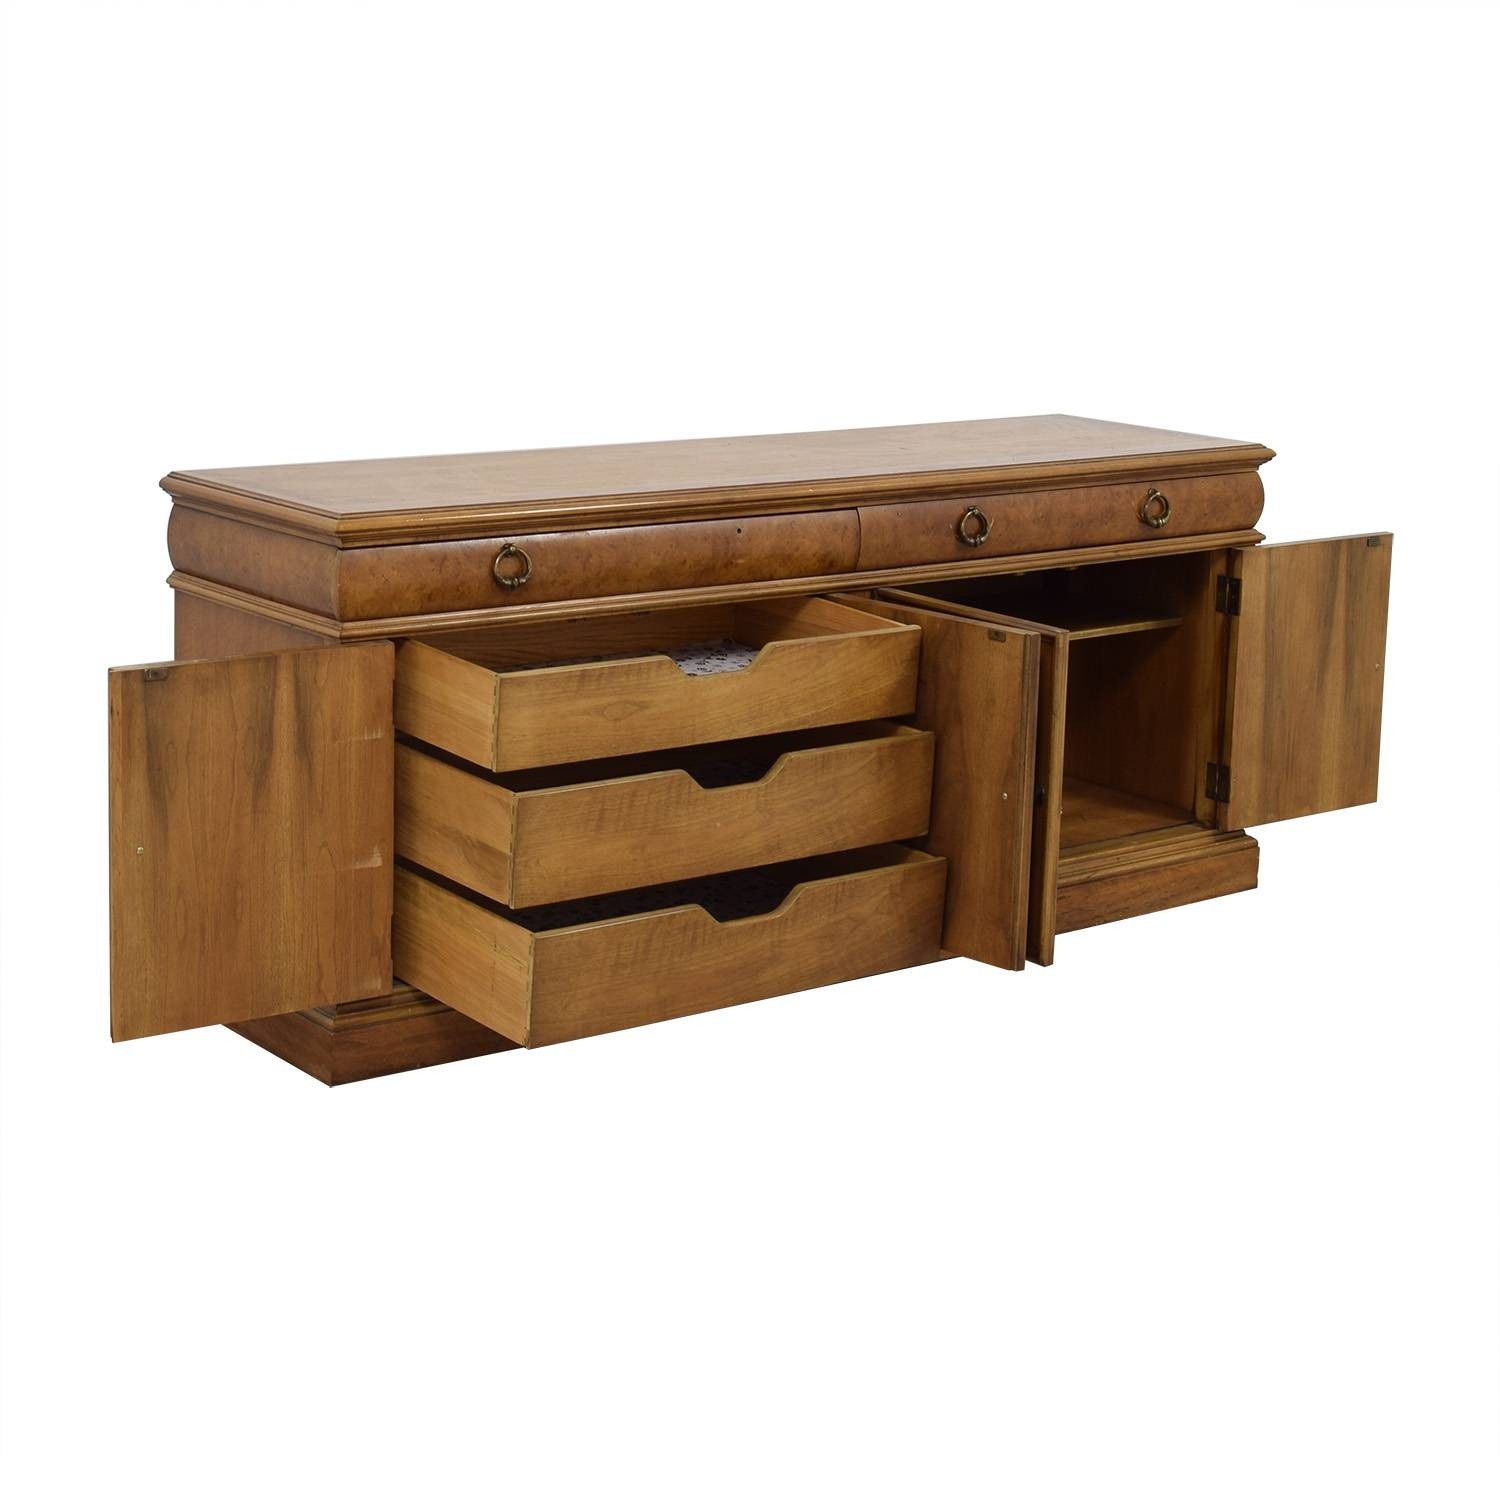 79% Off - Thomasville Thomasville Buffet Storage Cabinet / Storage within Thomasville Sideboards (Image 5 of 15)